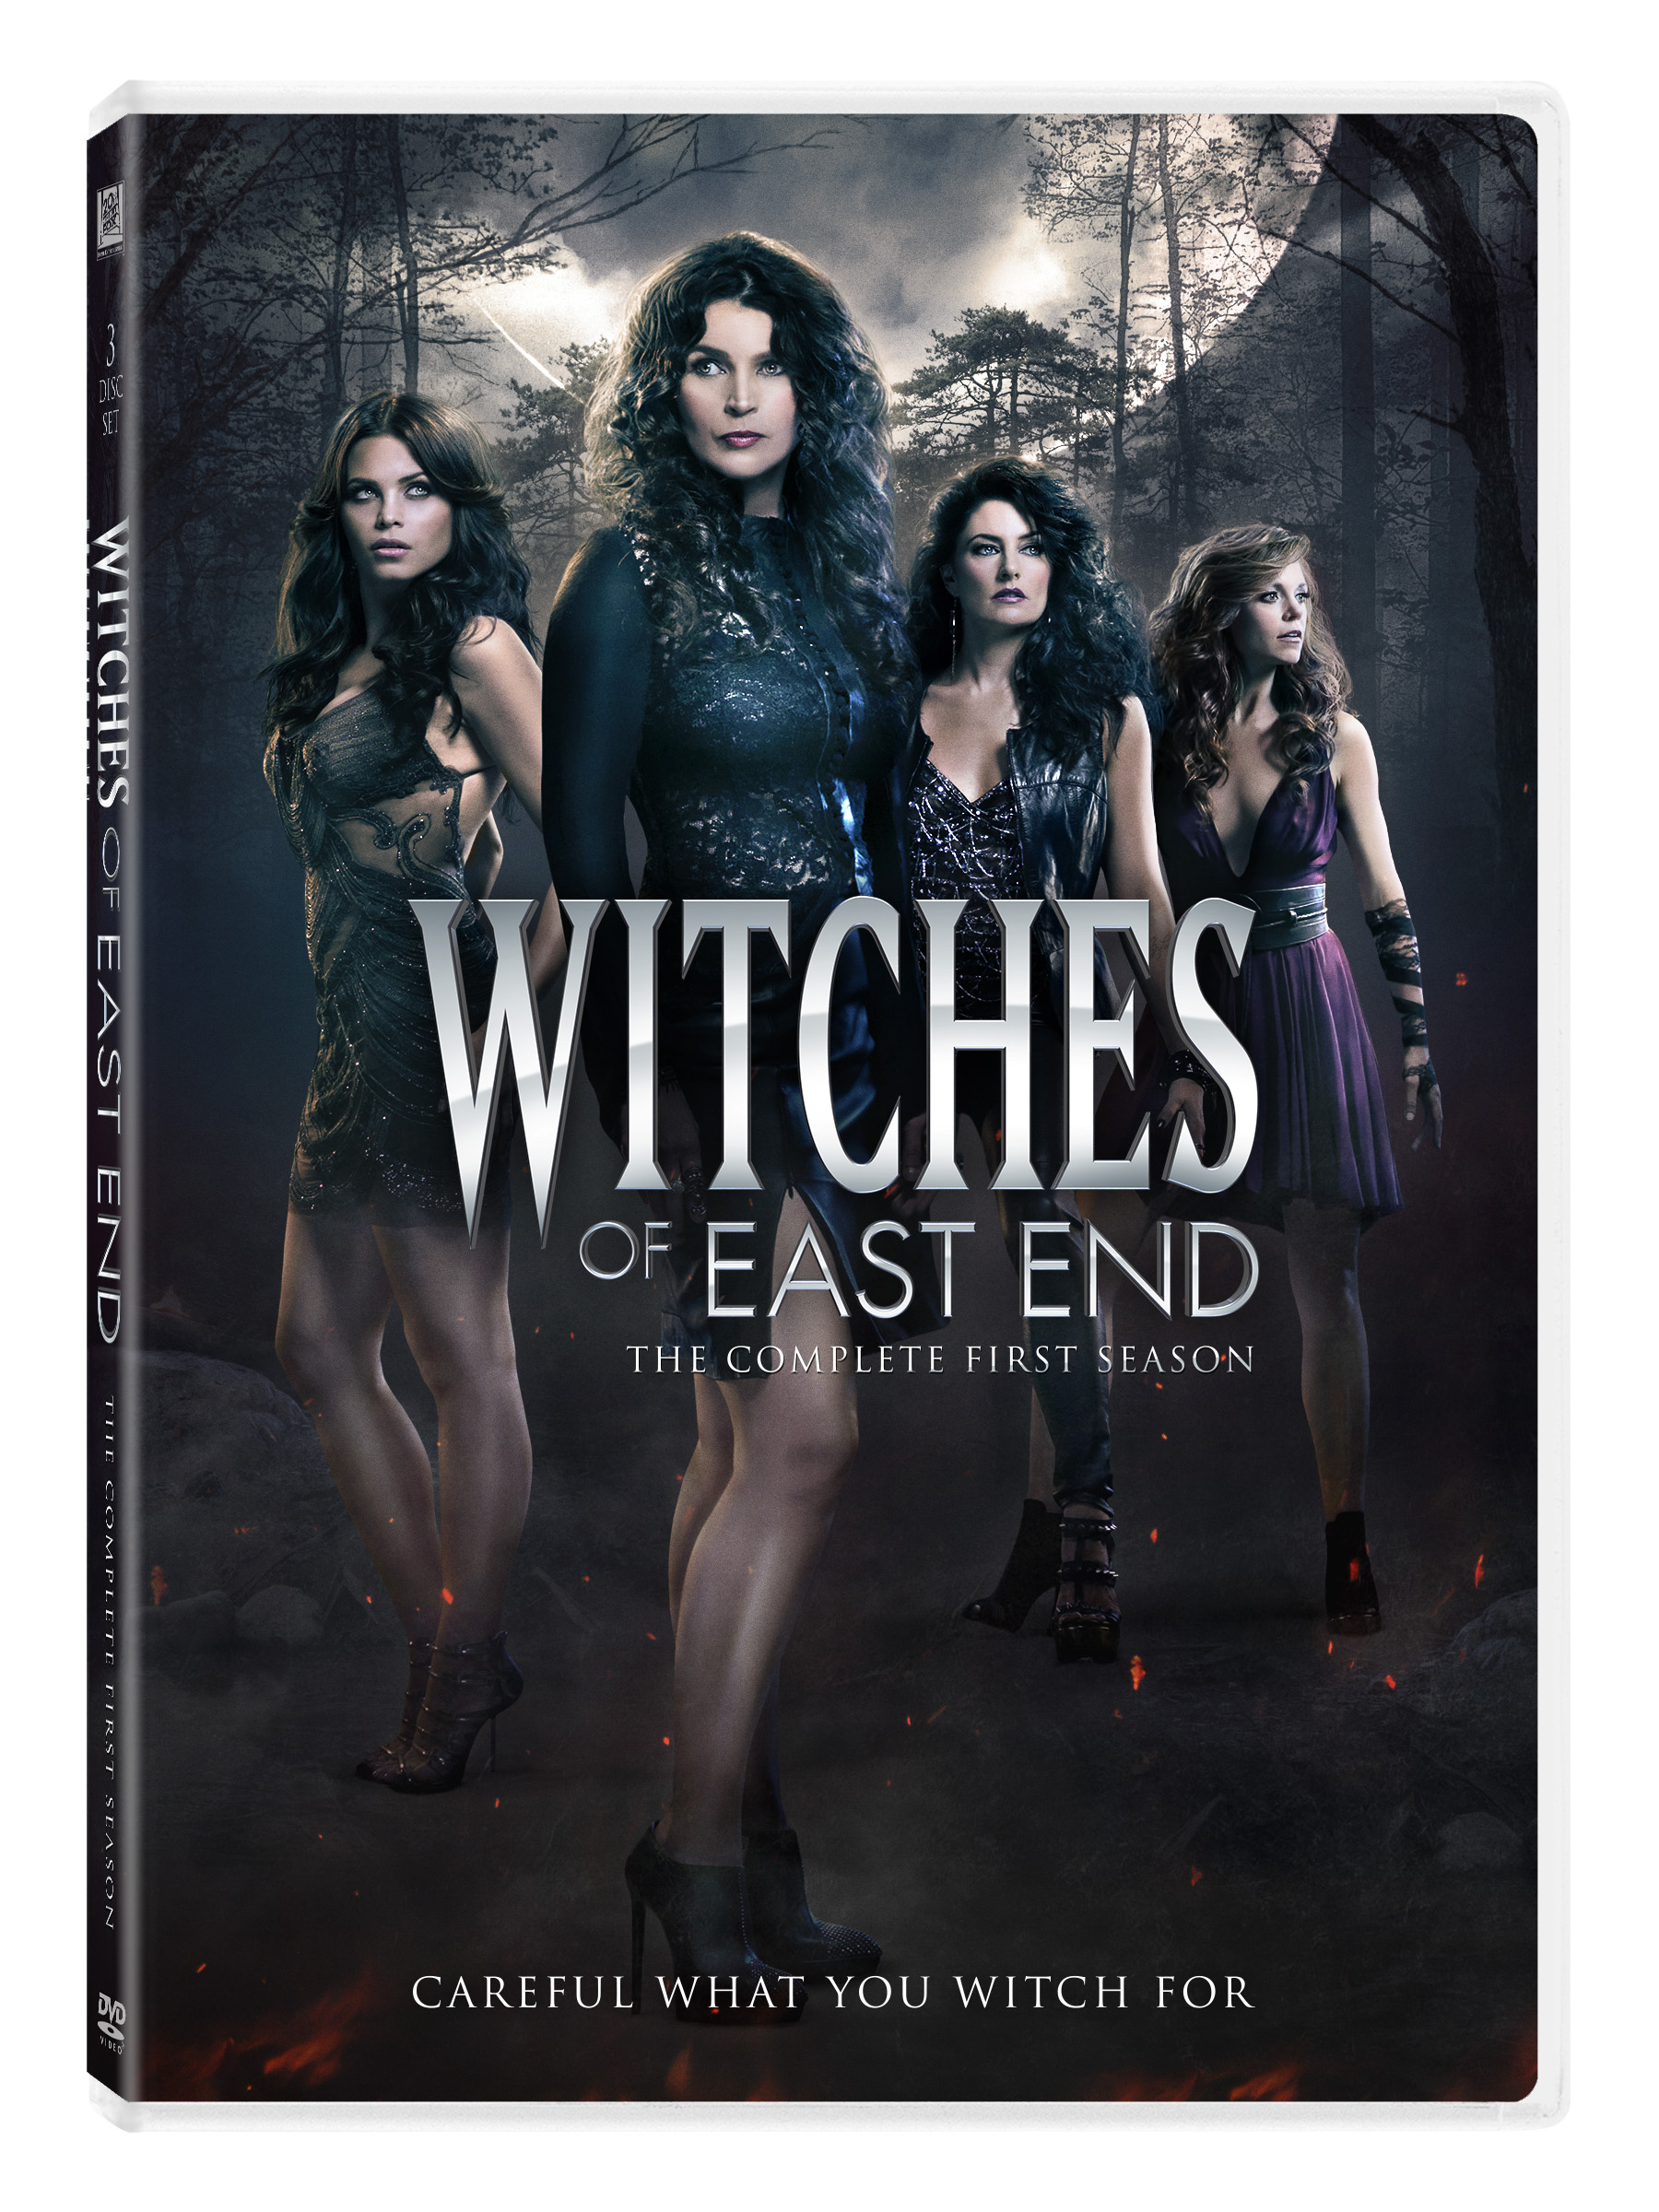 Witches Of East End Dvd Is Blessed With Bewitching First Season Deepest Dream